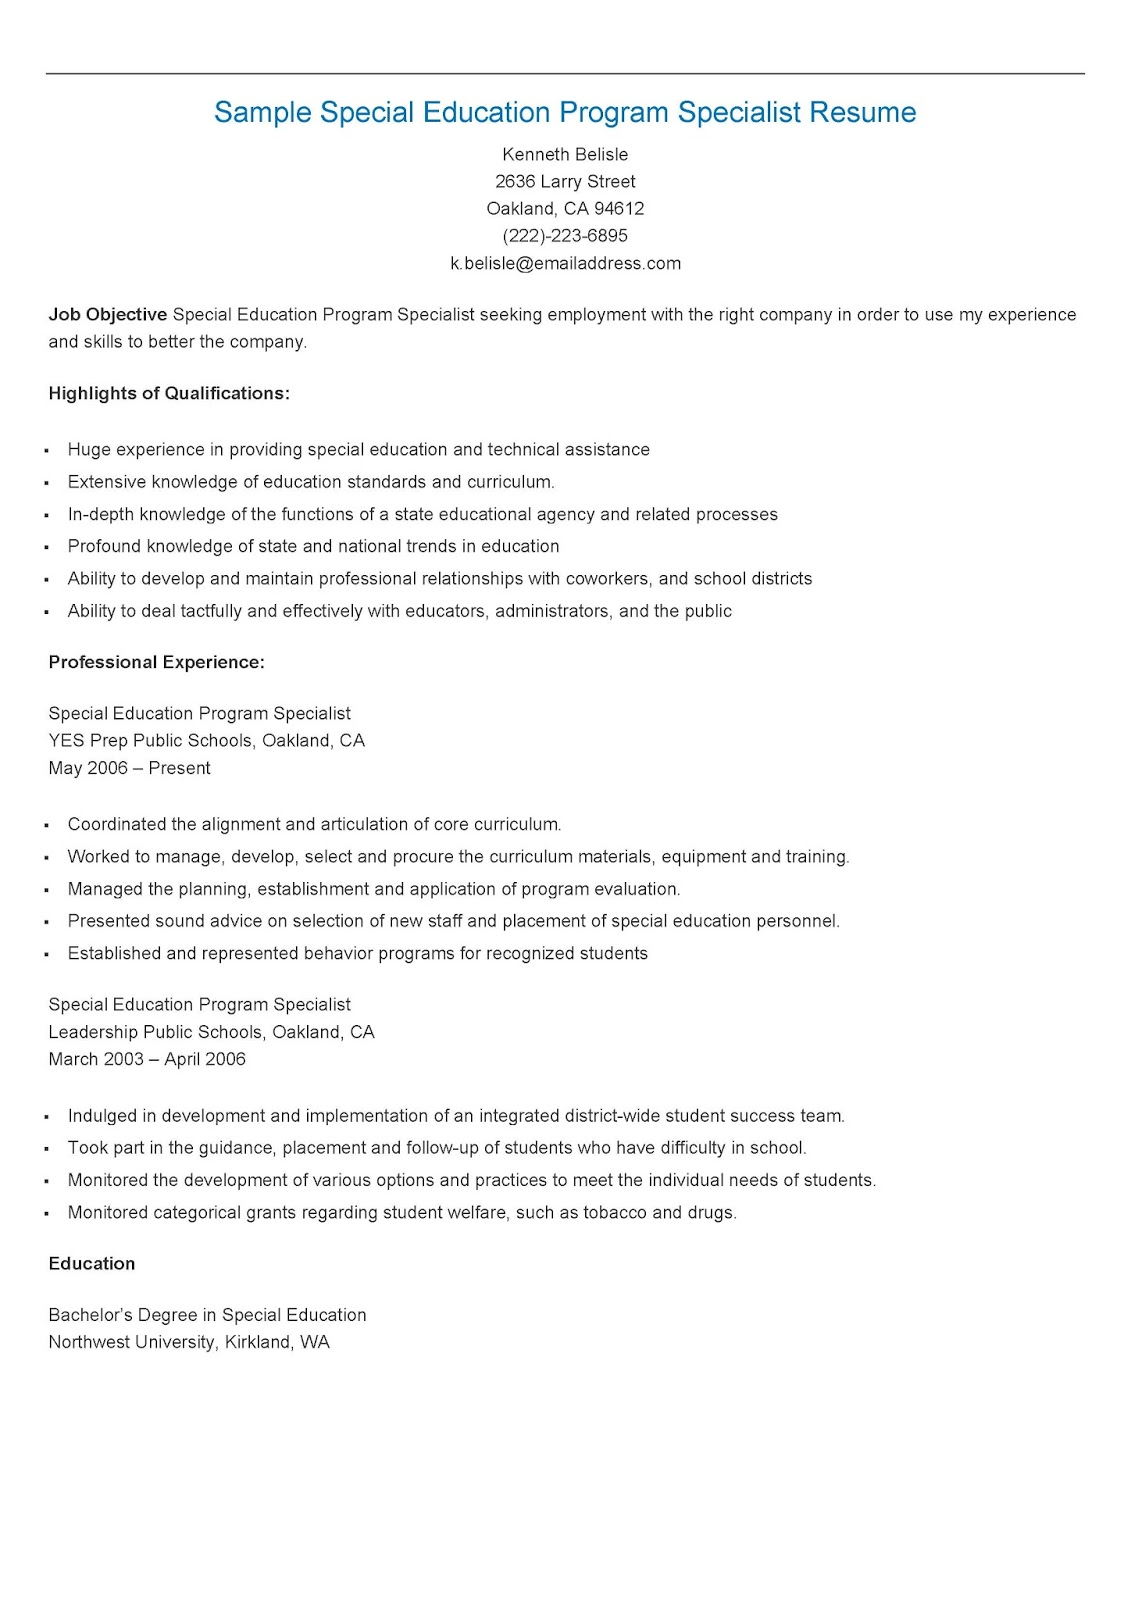 Resume Samples: Sample Special Education Program Specialist Resume